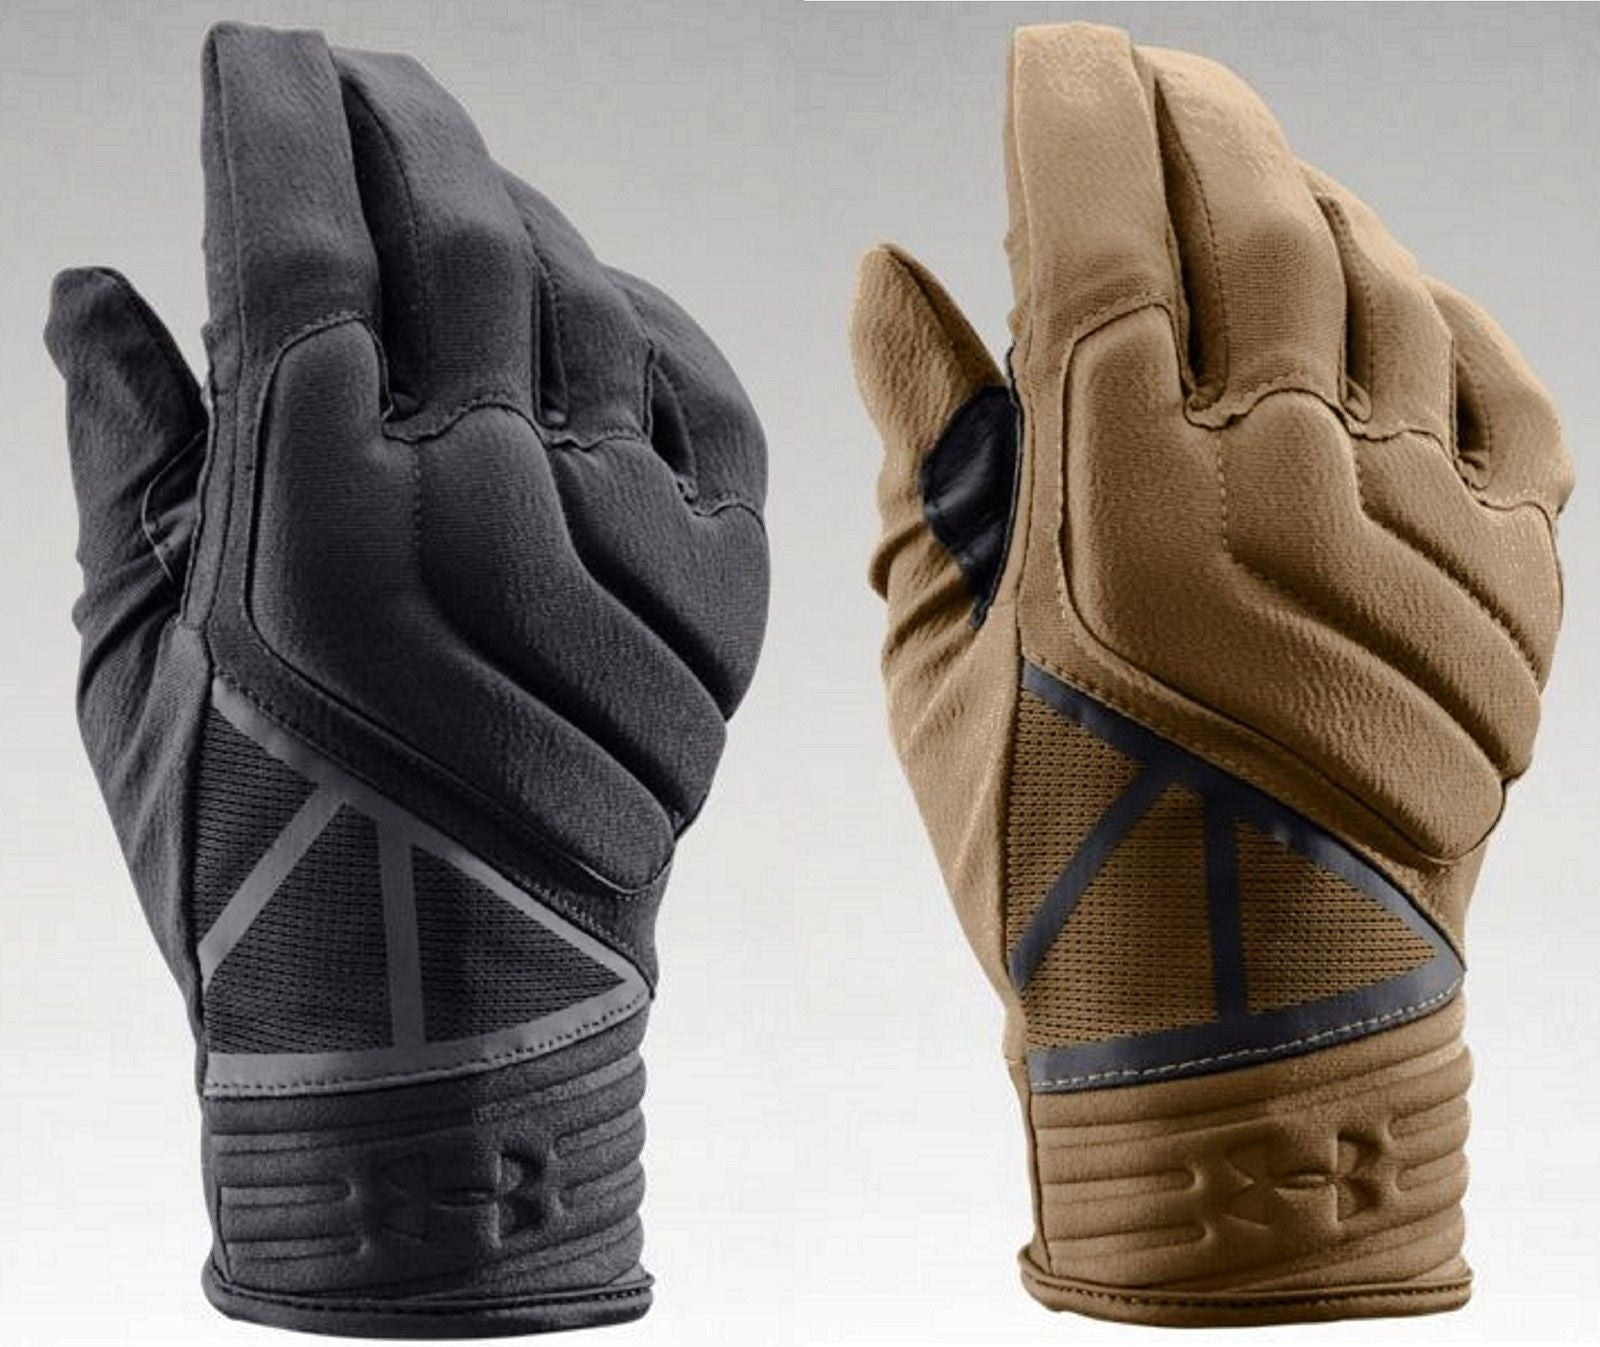 8c8977a29f7 Under Armour Padded Tactical Duty Gloves UA Synthetic Leather Touchscreen  Glove.